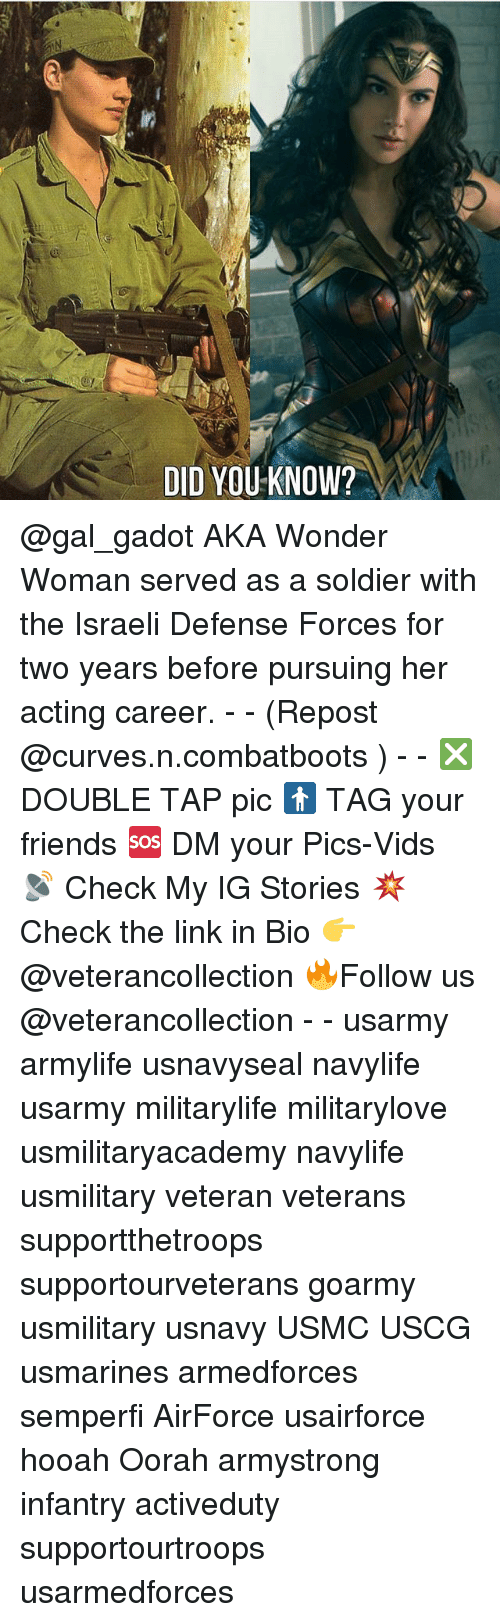 Friends, Memes, and Link: DID YOU KNOW? @gal_gadot AKA Wonder Woman served as a soldier with the Israeli Defense Forces for two years before pursuing her acting career. - - (Repost @curves.n.combatboots ) - - ❎ DOUBLE TAP pic 🚹 TAG your friends 🆘 DM your Pics-Vids 📡 Check My IG Stories 💥Check the link in Bio 👉@veterancollection 🔥Follow us @veterancollection - - usarmy armylife usnavyseal navylife usarmy militarylife militarylove usmilitaryacademy navylife usmilitary veteran veterans supportthetroops supportourveterans goarmy usmilitary usnavy USMC USCG usmarines armedforces semperfi AirForce usairforce hooah Oorah armystrong infantry activeduty supportourtroops usarmedforces